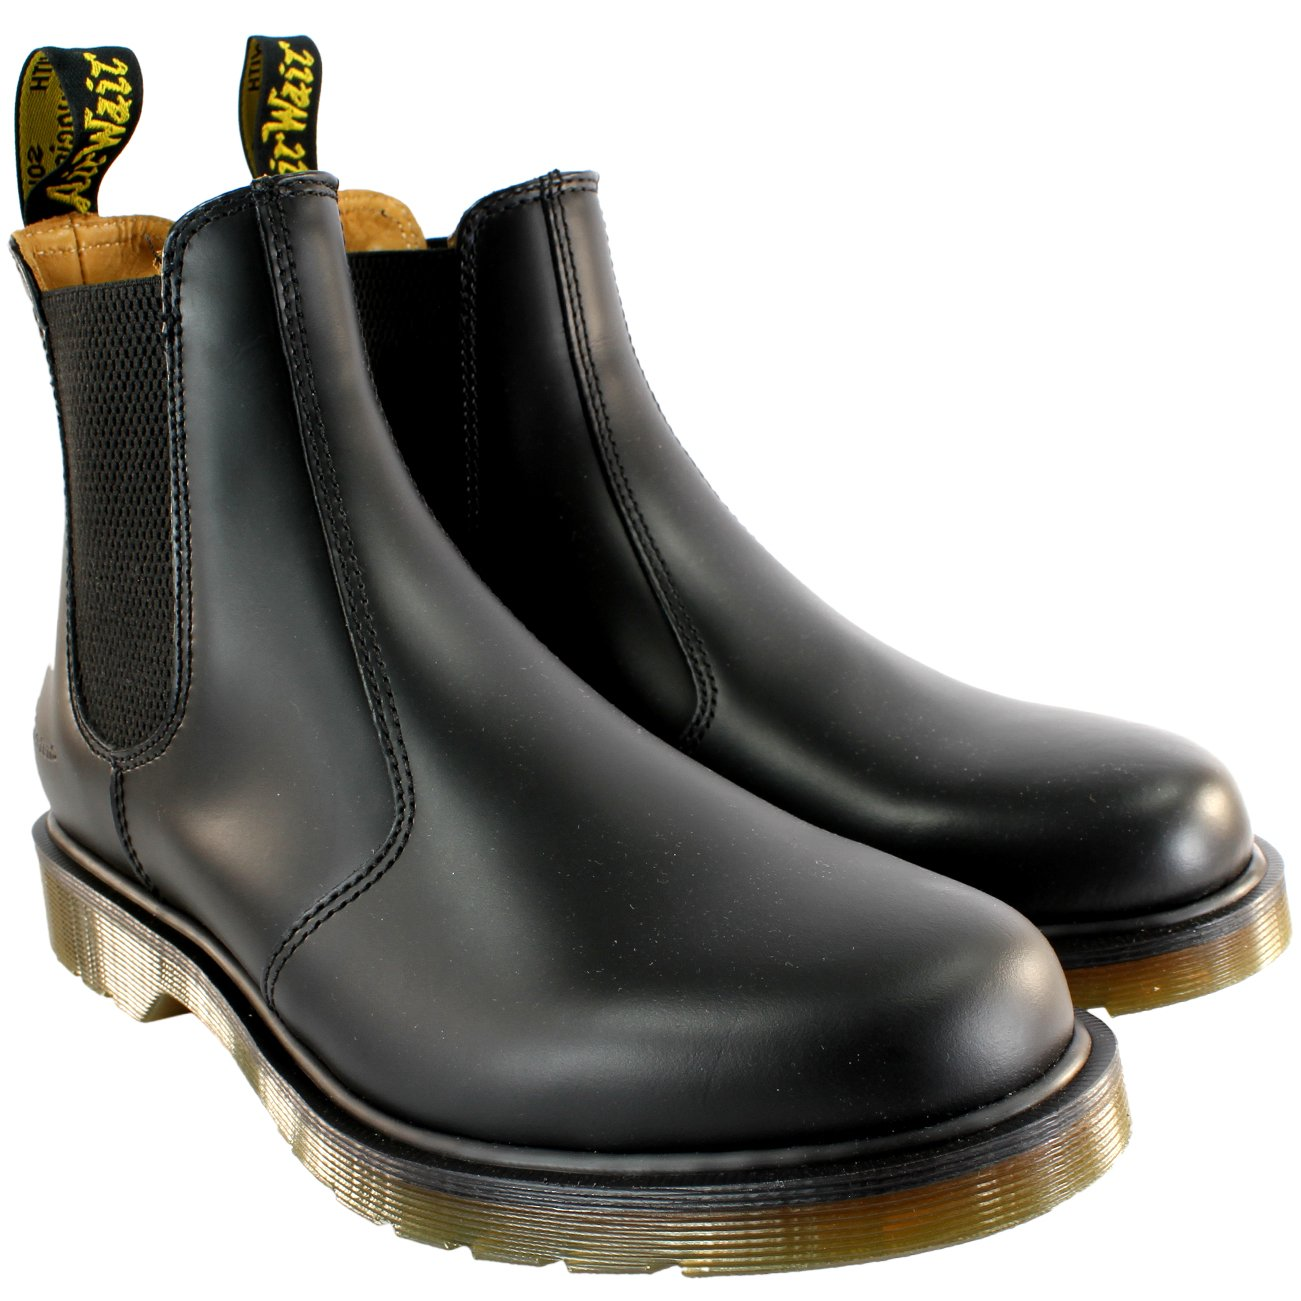 Womens Dr Martens Airwair Leather Chelsea Style Low Heel Ankle Boot - Black - 10